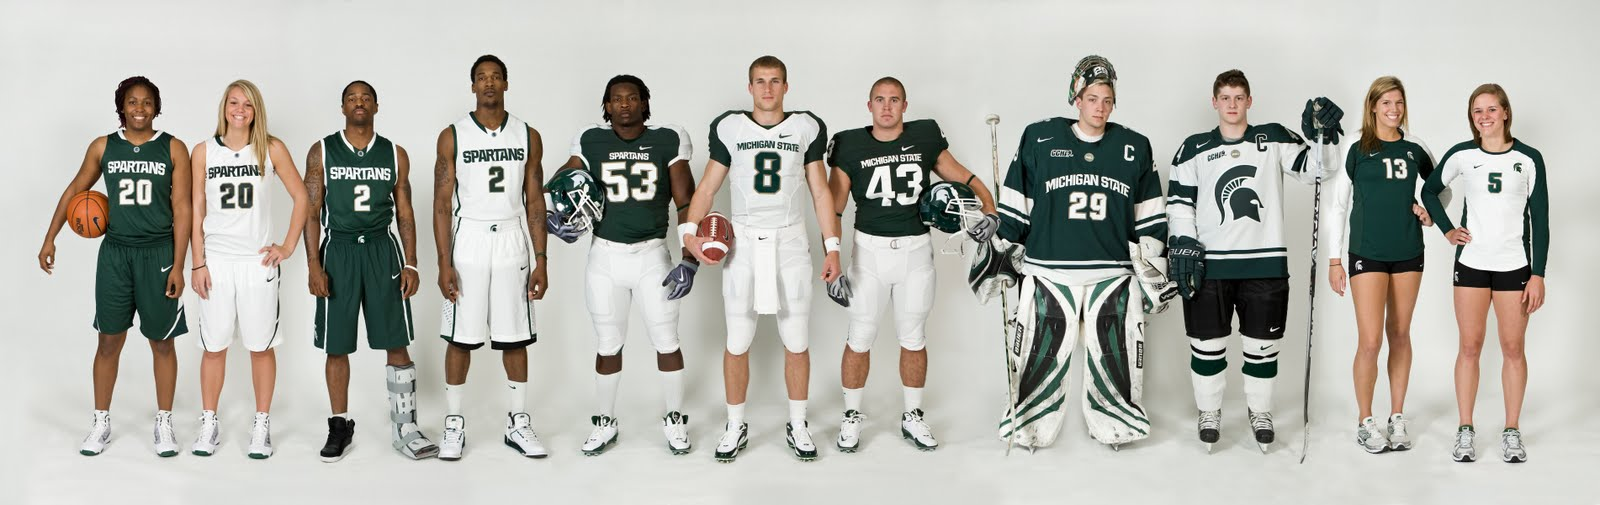 The Other Side of Spartan Sports: MSU unveils new uniforms, Nike-inspired  branding